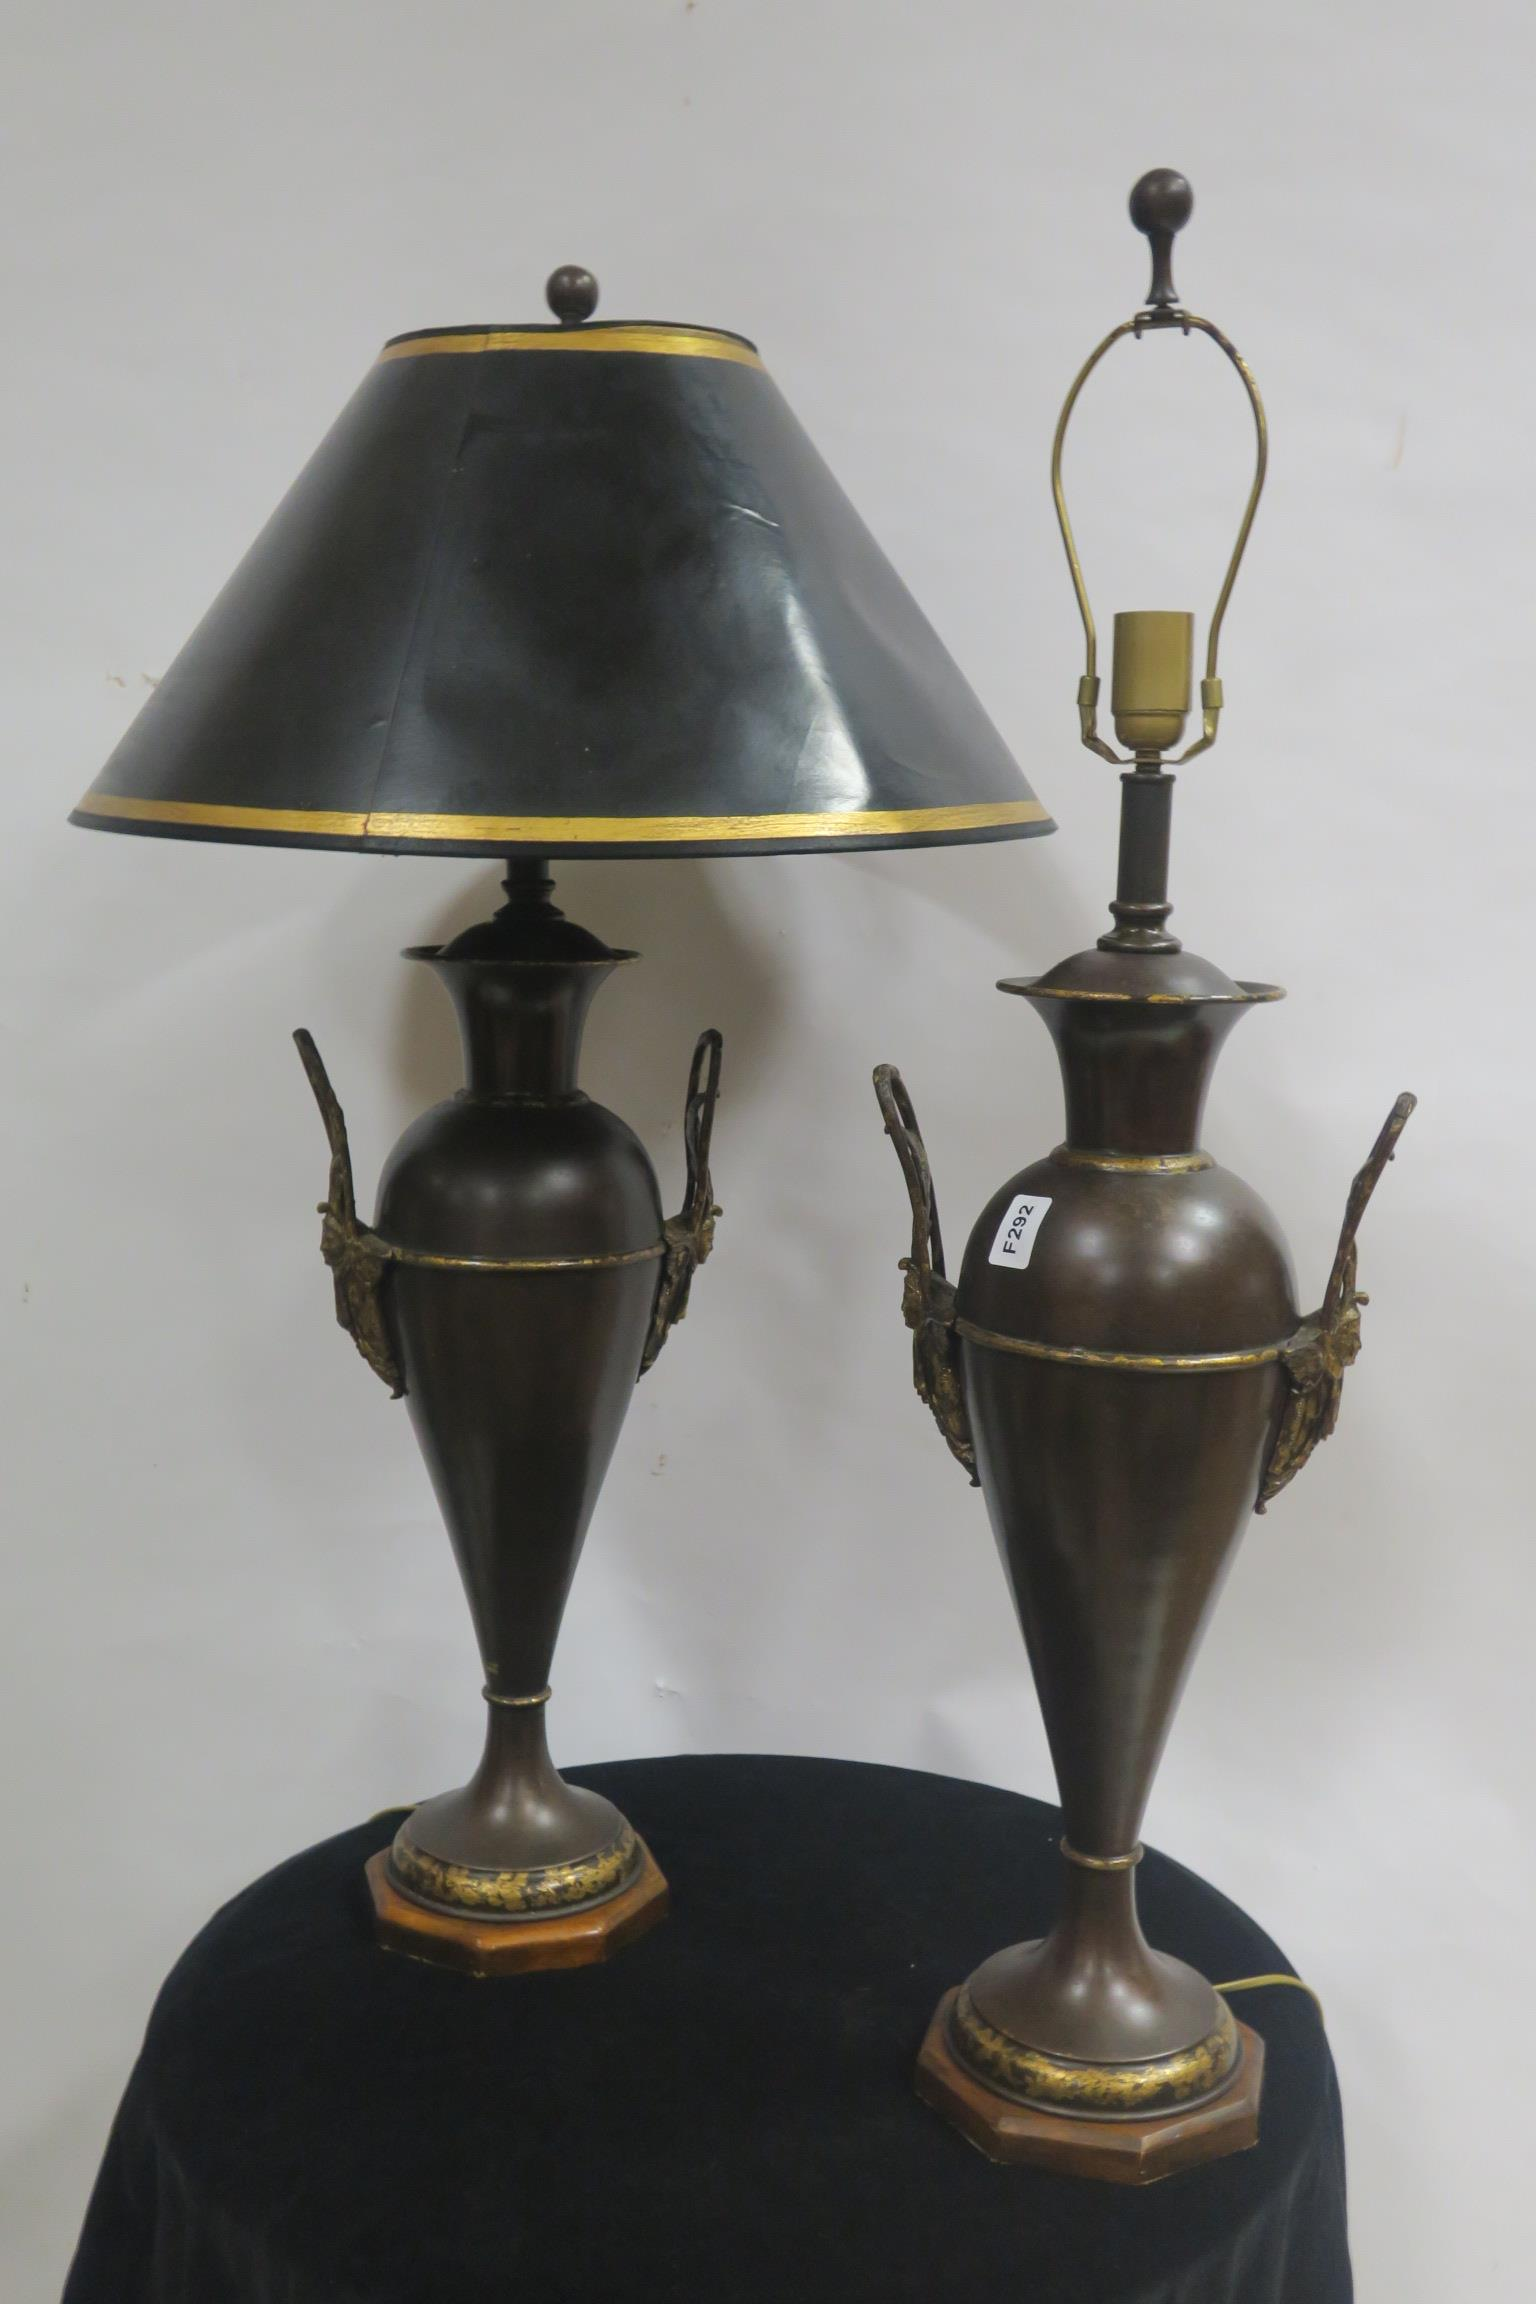 Lot 123 - A PAIR OF BRONZED AND GILT BRASS TABLE LAMPS each of urn form with mask and scroll handles raised